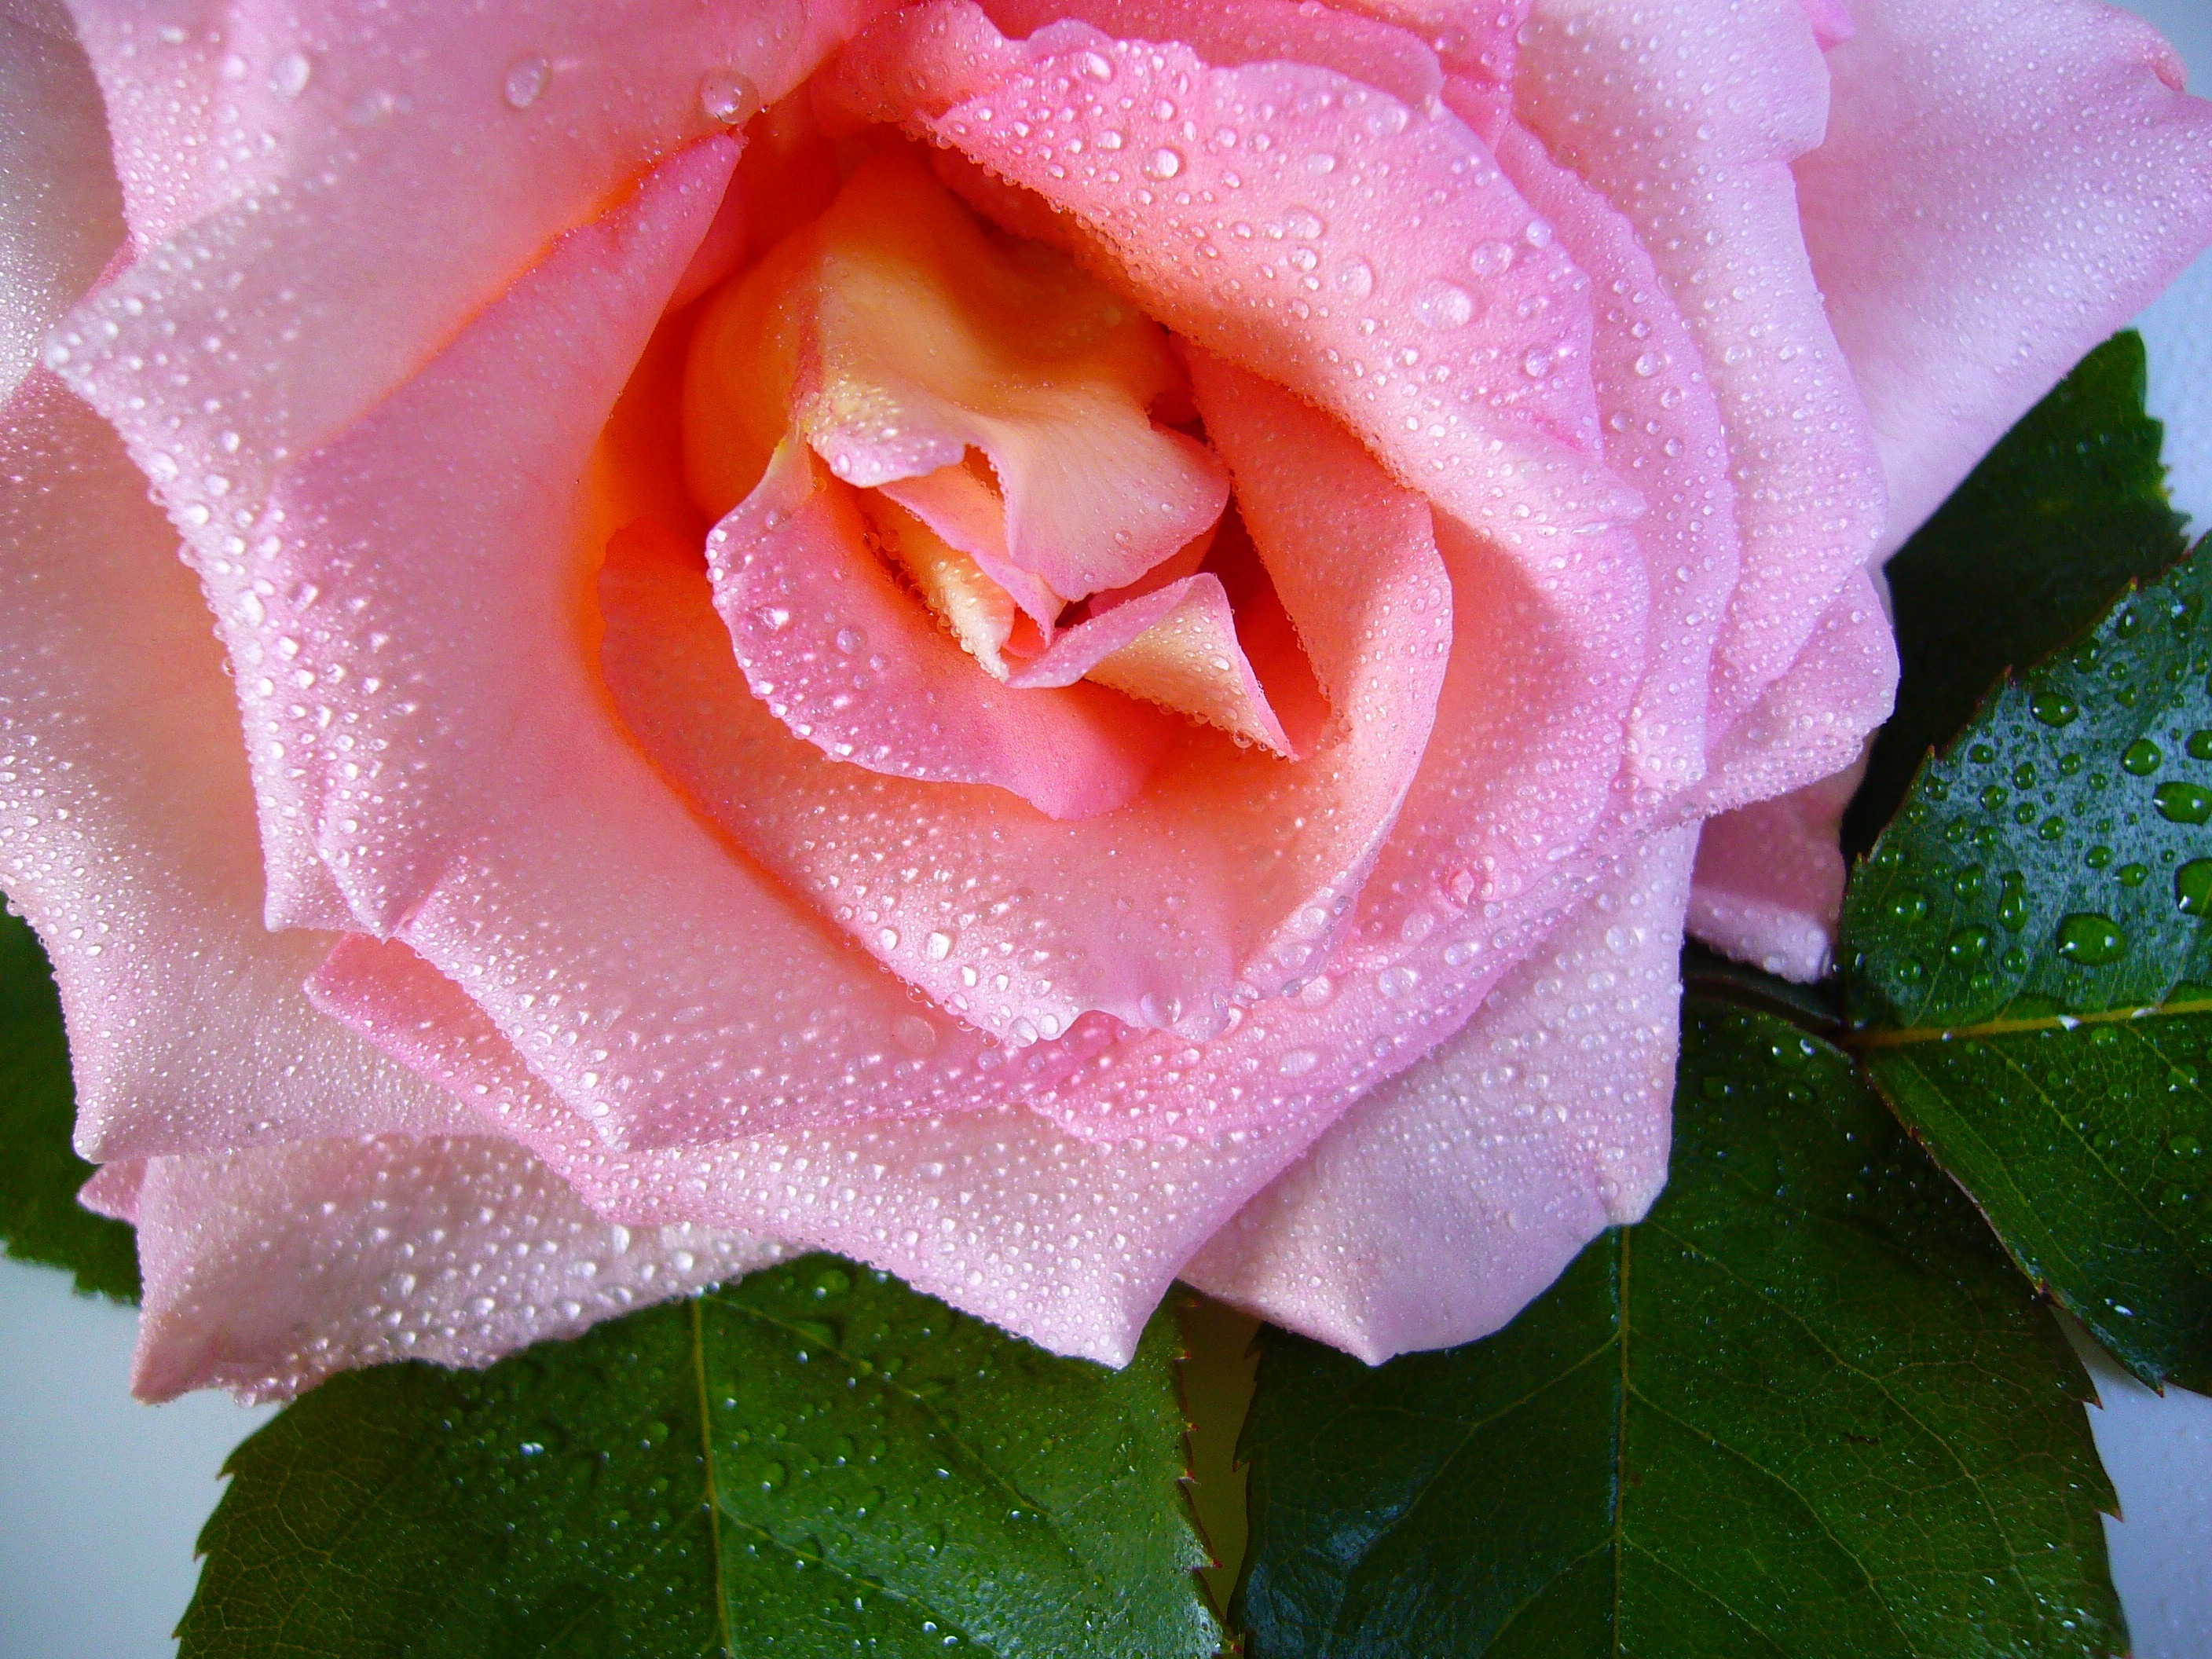 64879 download wallpaper Macro, Rose Flower, Rose, Flower, Drops, Dew, Bud screensavers and pictures for free